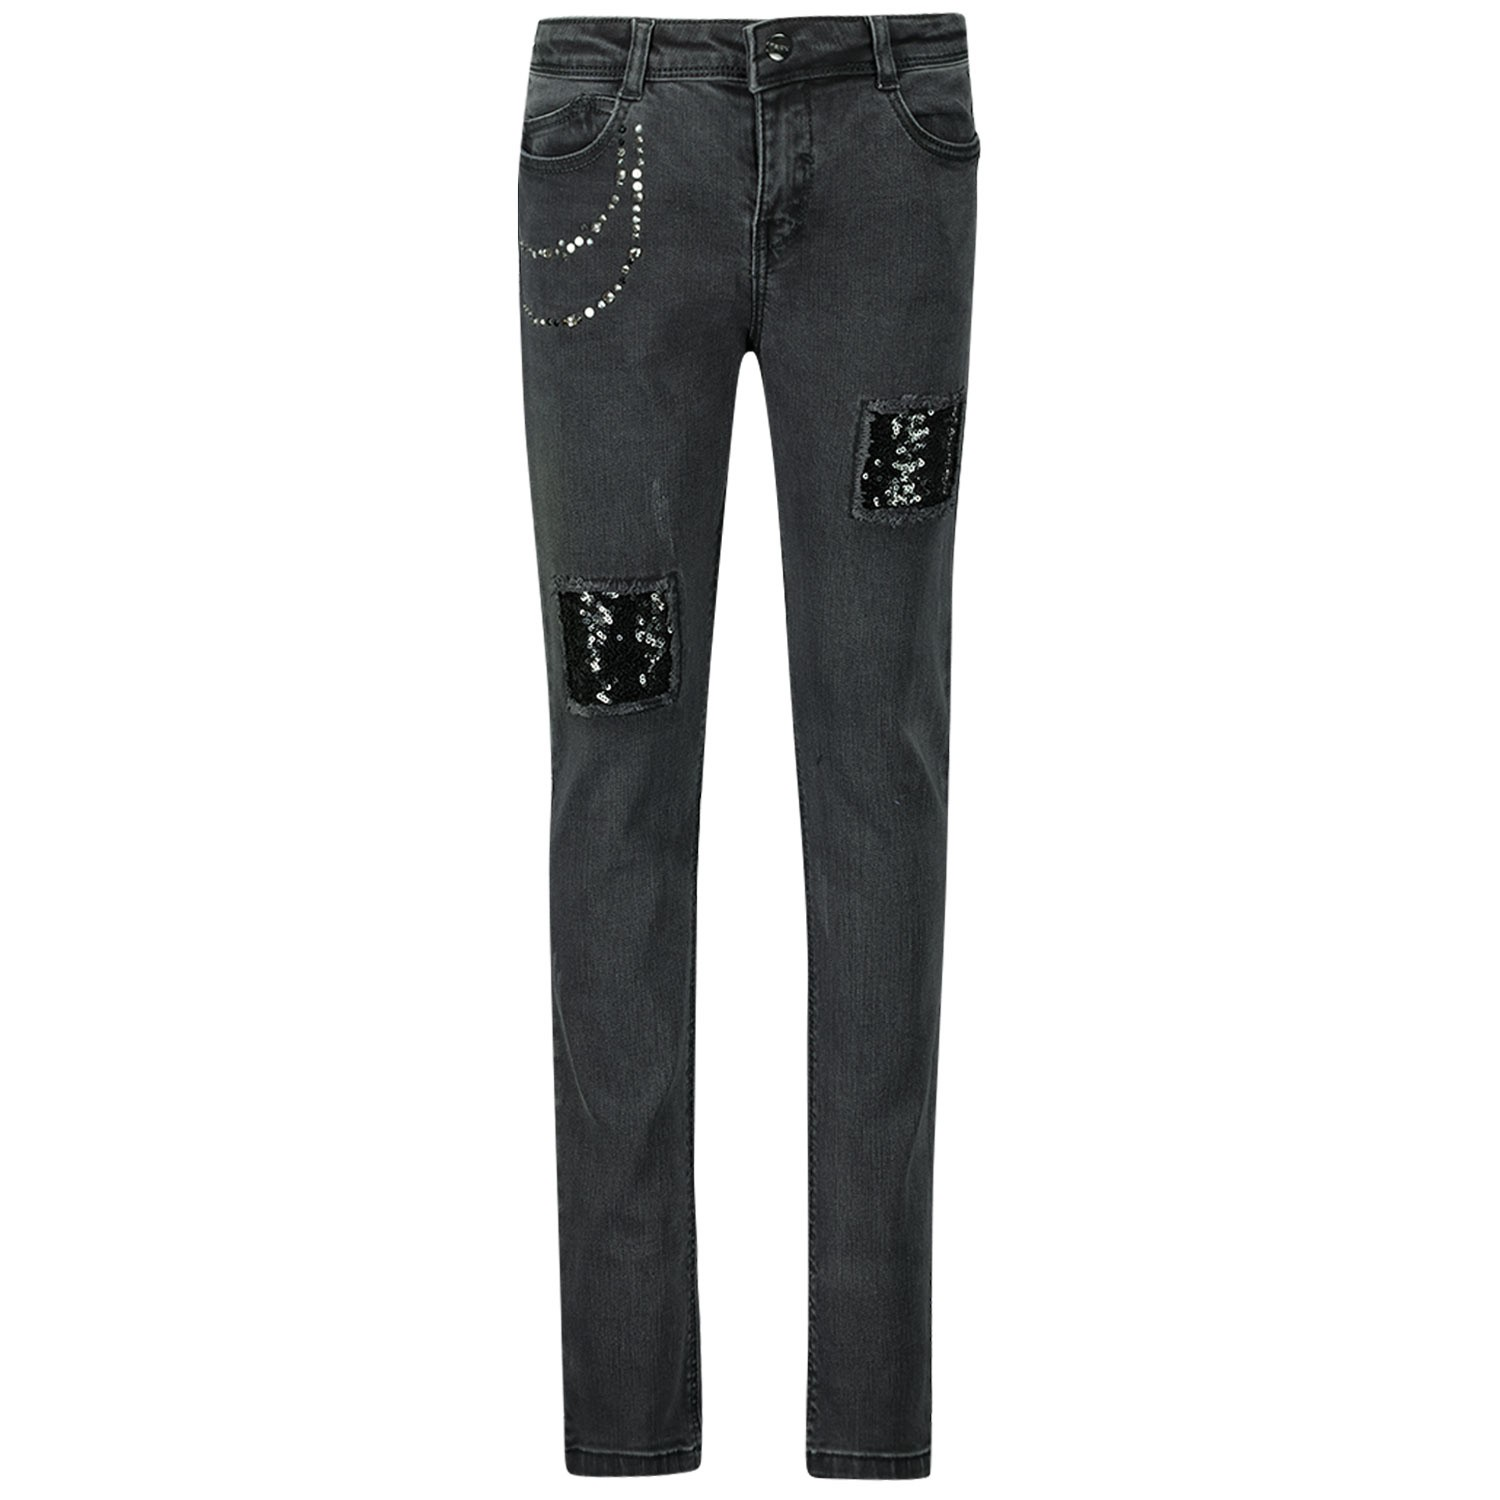 Picture of Mayoral 4502 kids jeans black